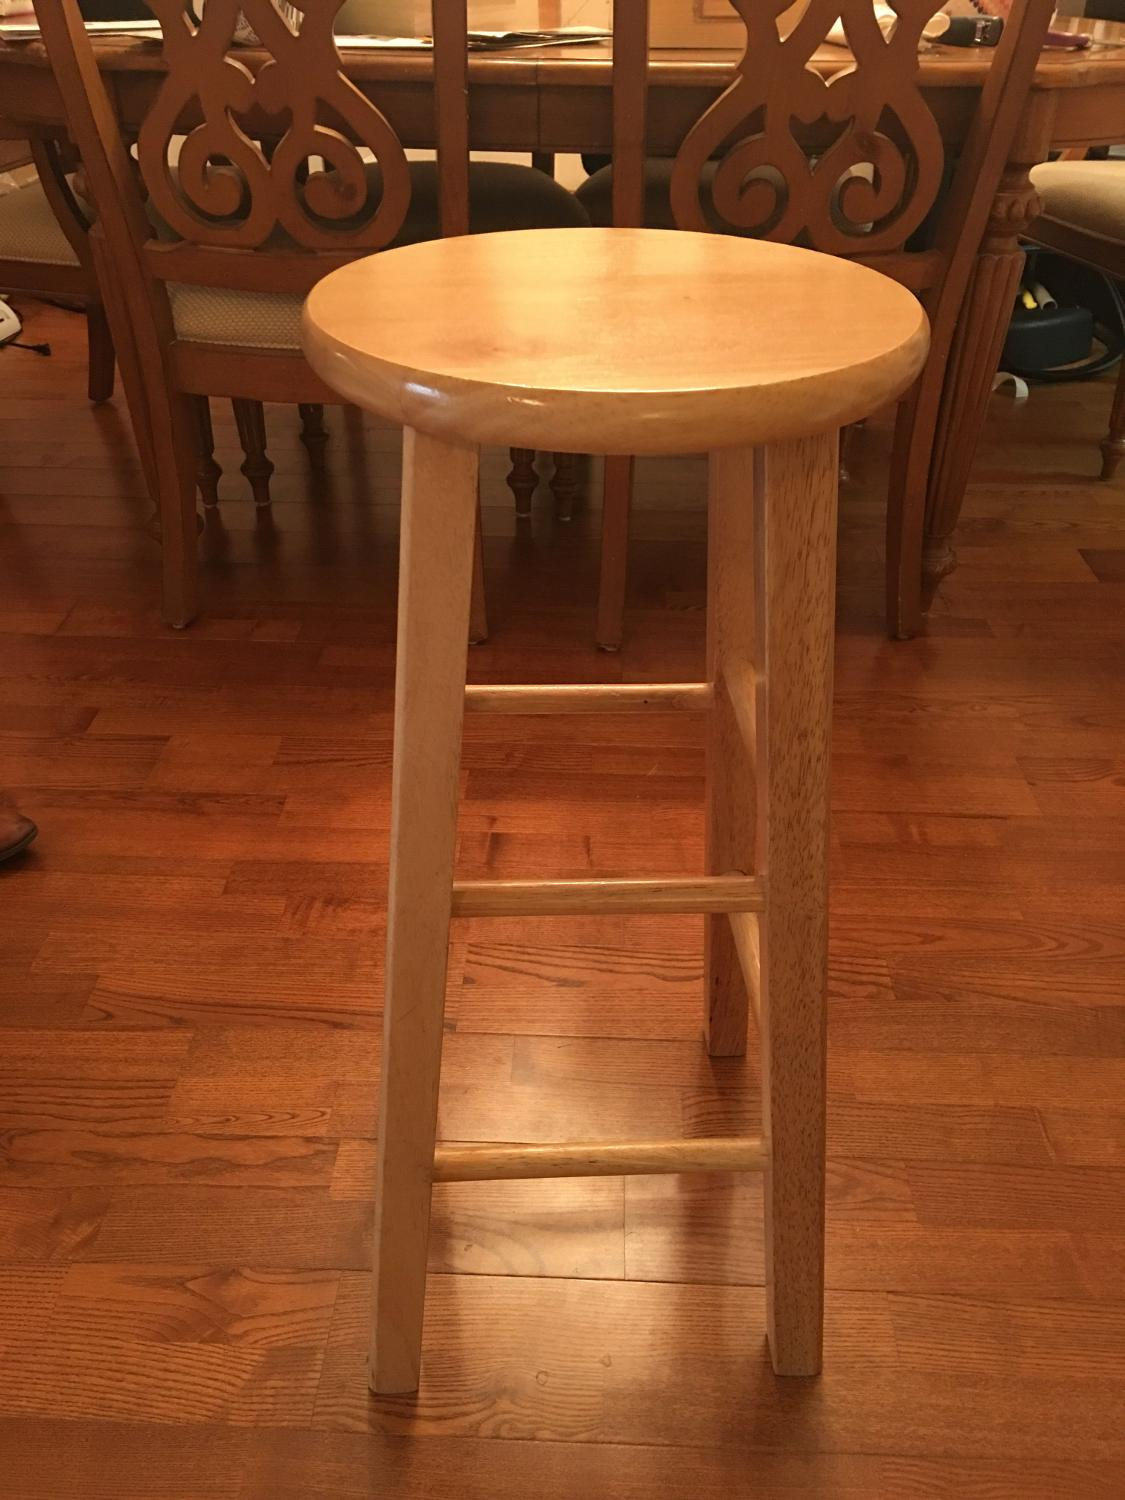 Best Wooden Stool For Sale In Metairie Louisiana For 2017